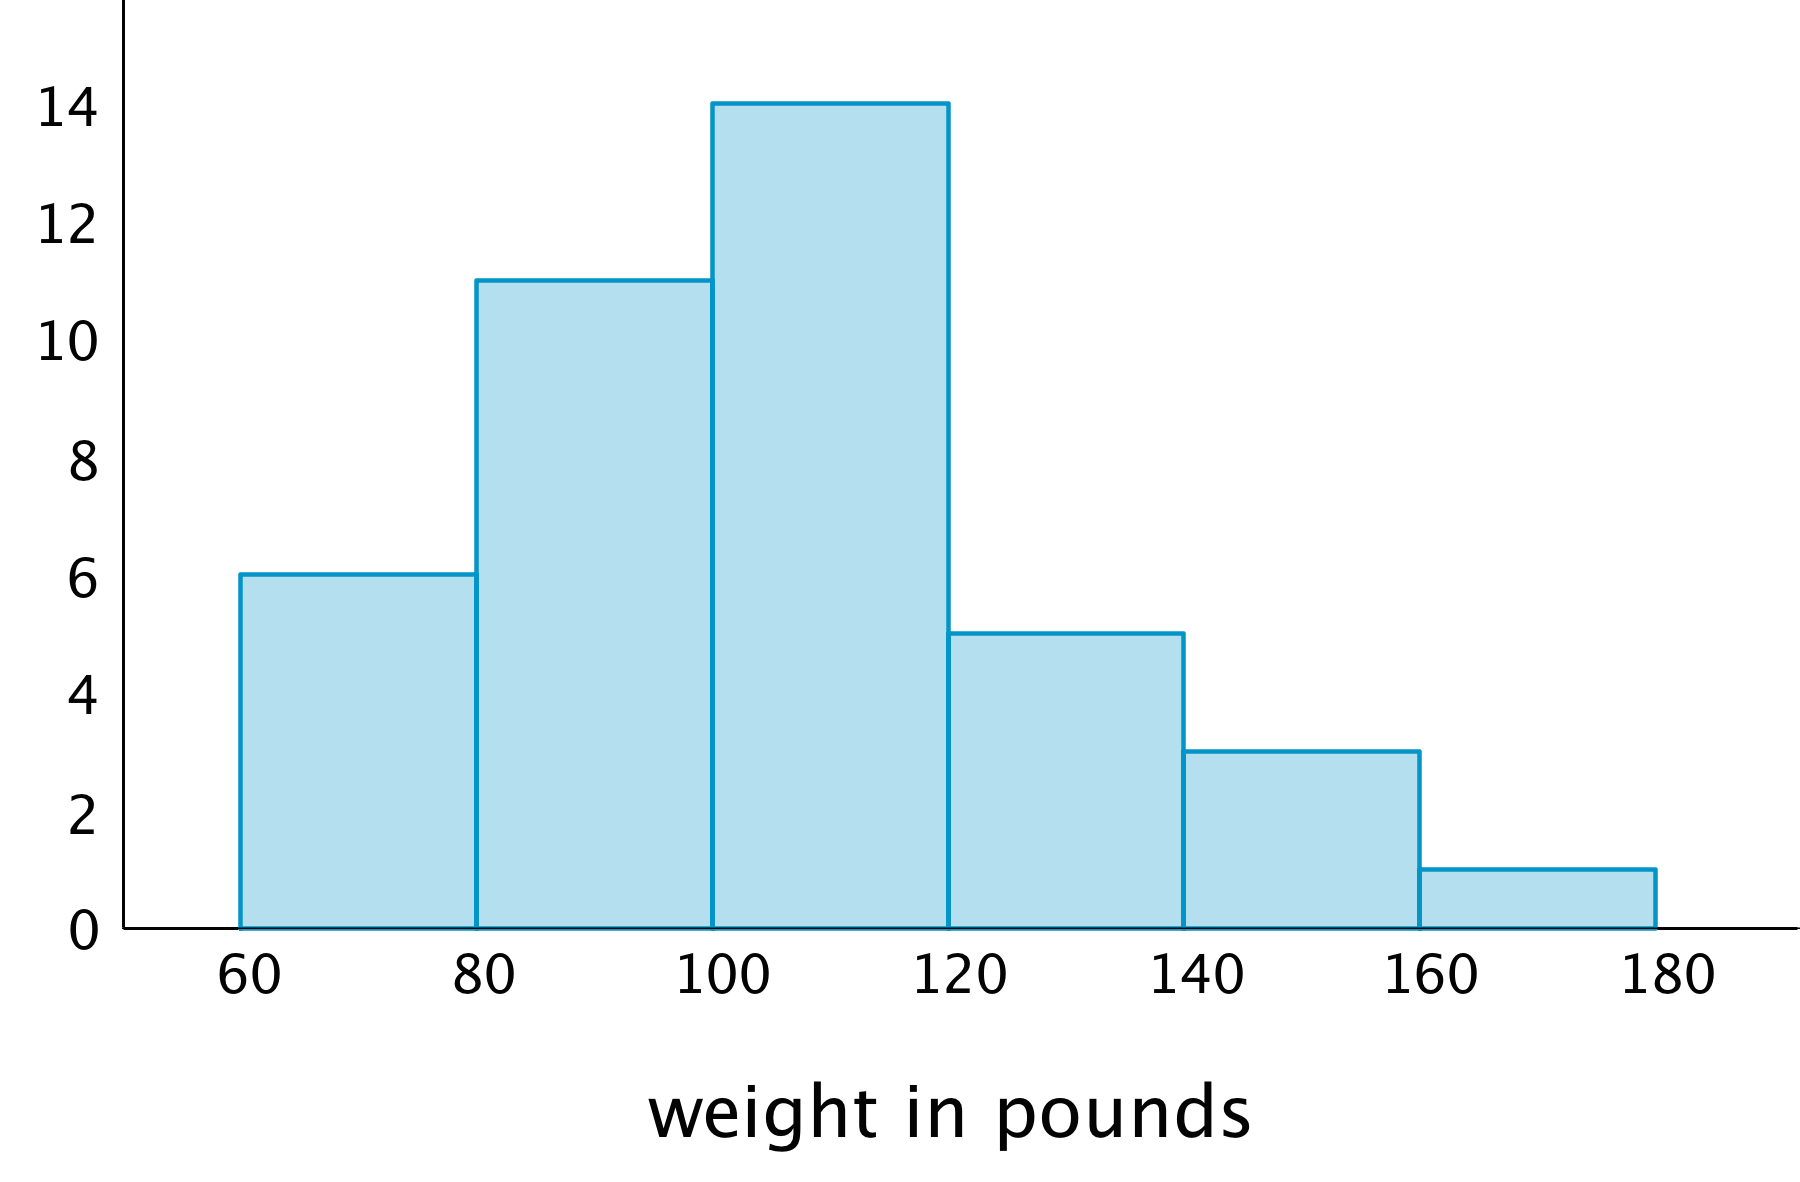 "A histogram: The horizontal axis is labeled ""weight in pounds"" and the numbers 60 through 180, in increments of 20, are indicated. On the vertical axis the numbers 0 through 14, in increments of 2, are indicated. The data represented by the bars are as follows: Weight from 60 up to 80, 6. Weight from 80 up to 100, 11. Weight from 100 up to 120 , 14. Weight from 120 up to 140, 5. Weight from 140 up to 160, 3. Weight from 160 up to 180, 1."